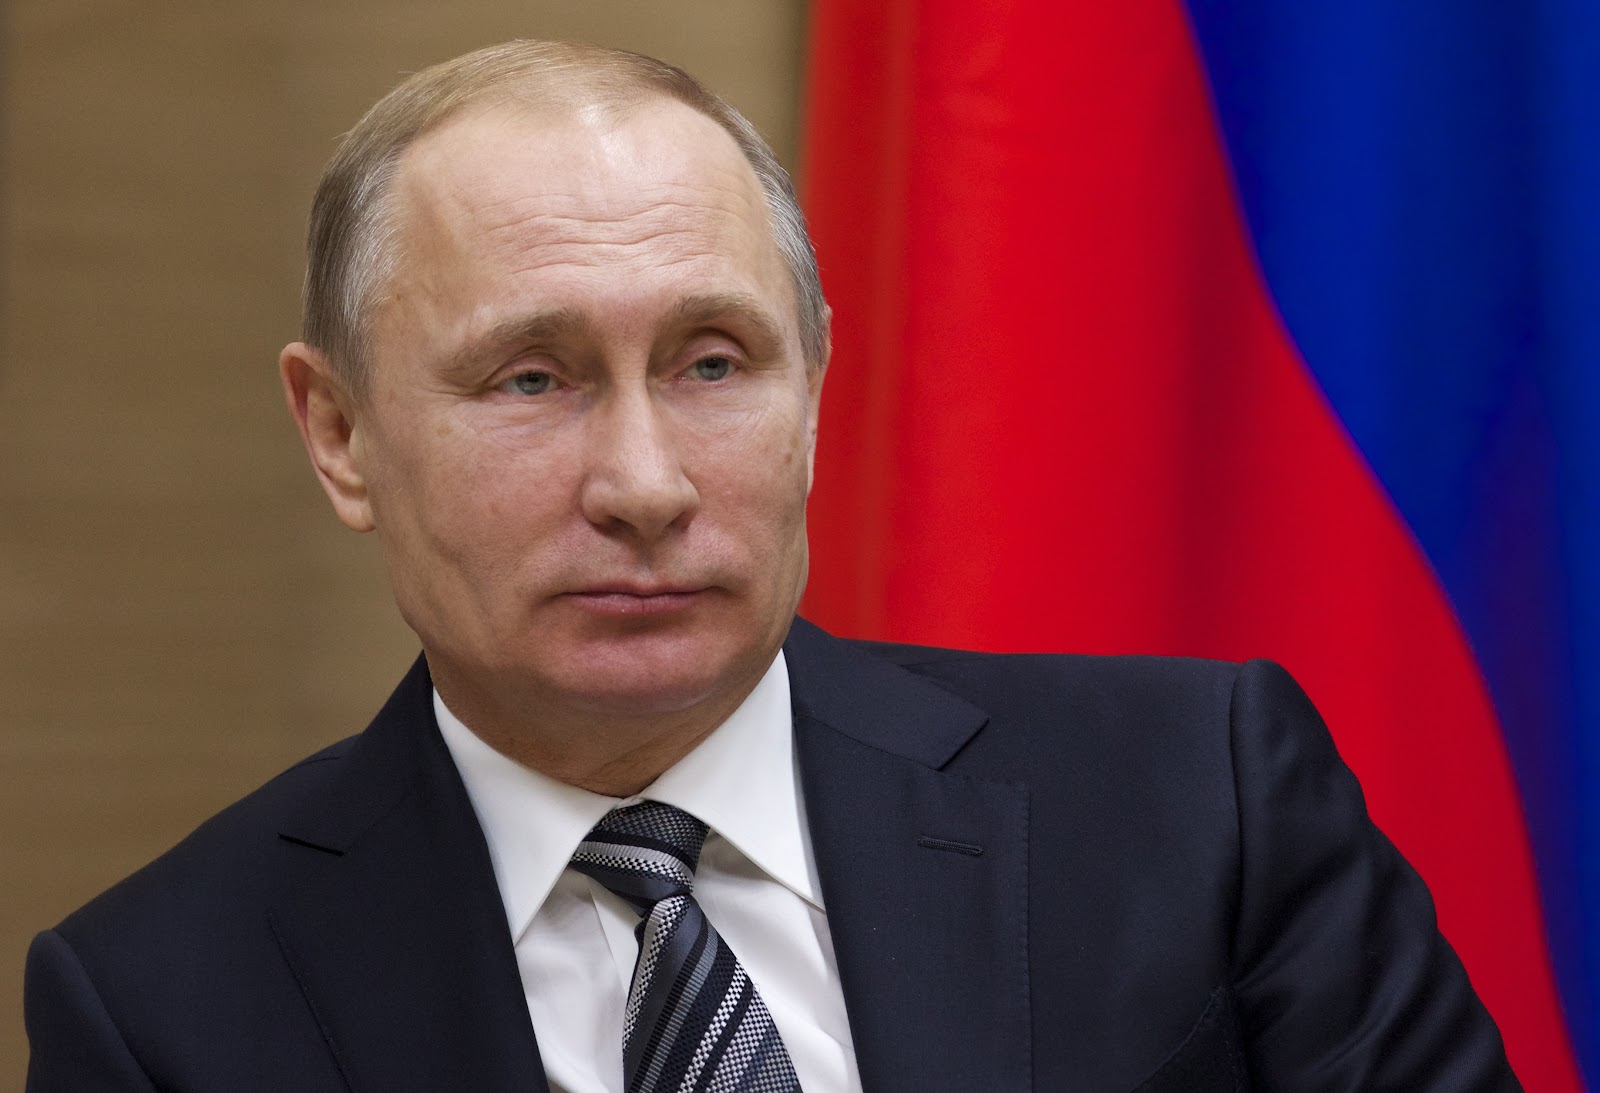 Russian influence on the eleciton fo 2016